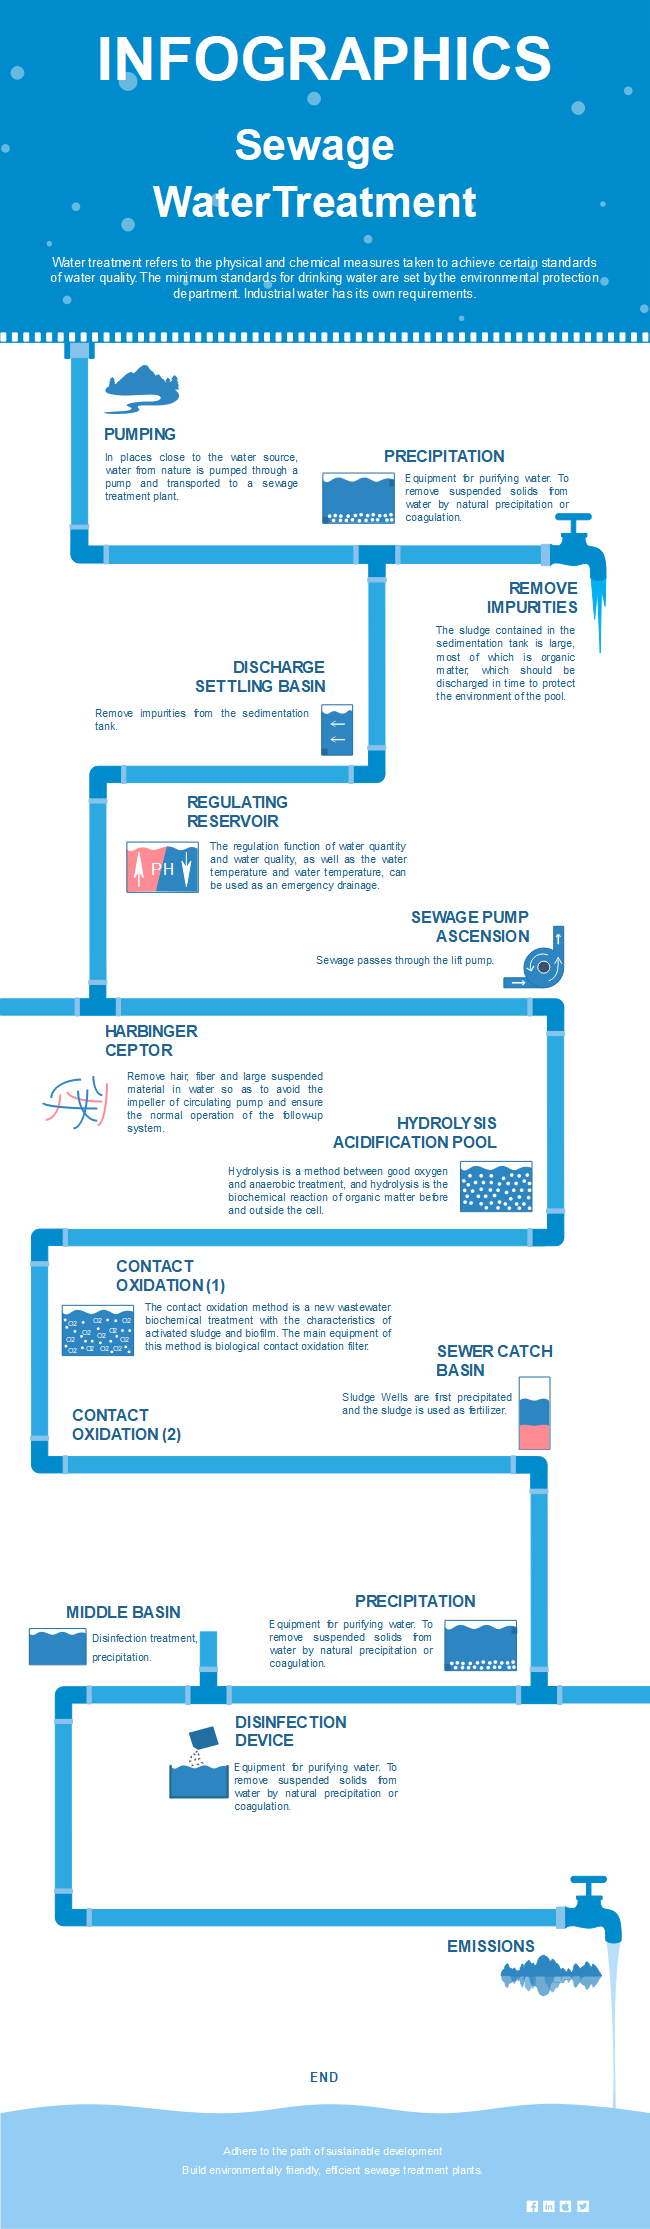 Water Treatment Infographic